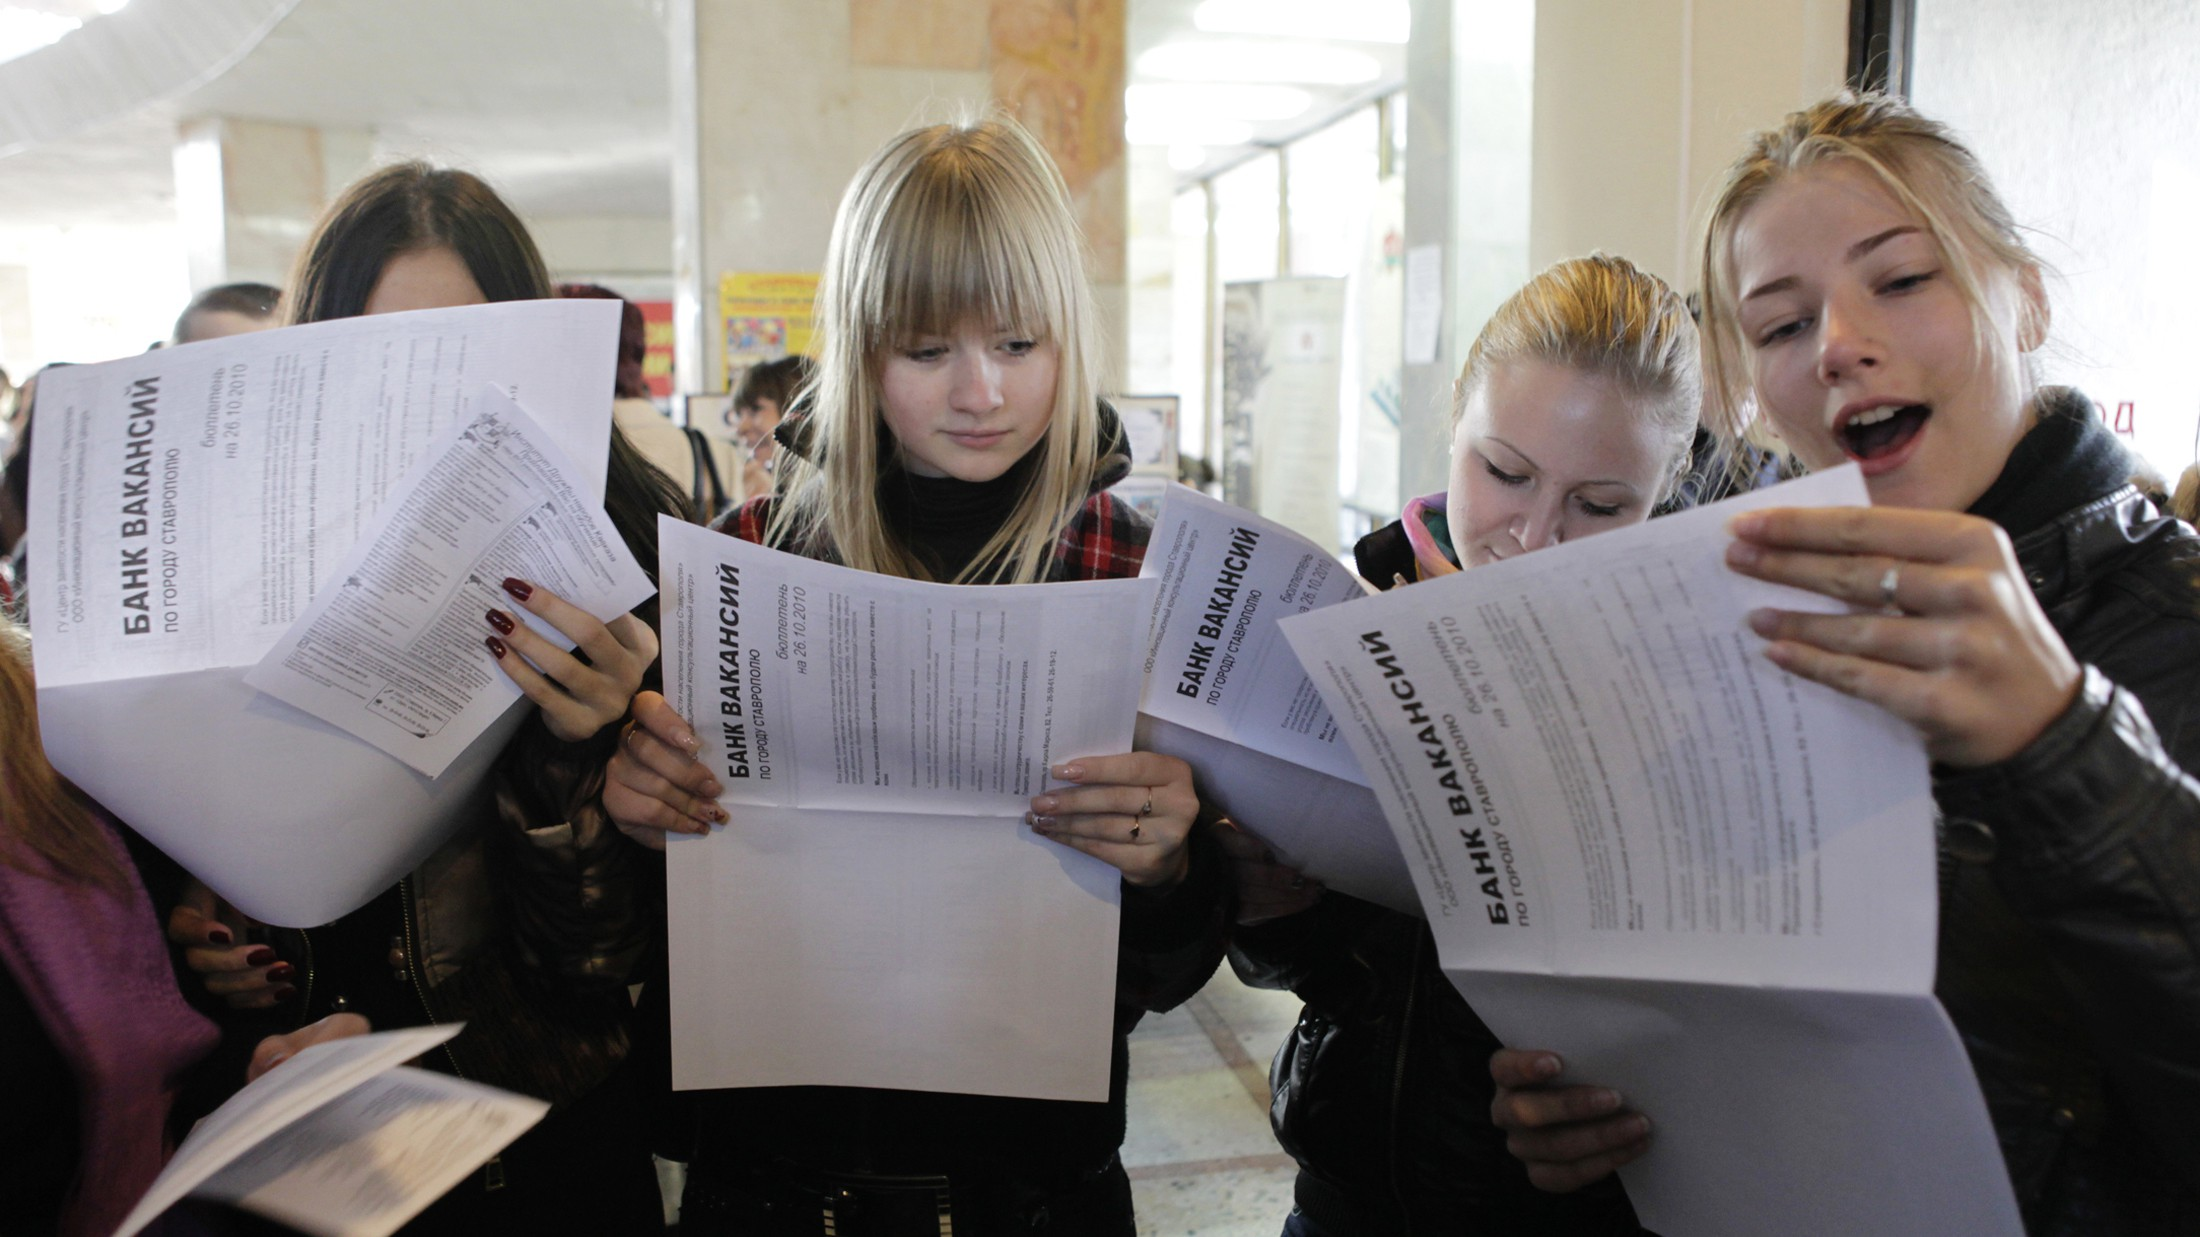 Women look at job listings during the 22nd city job fair held in Russia's southern city of Stavropol October 26, 2010.